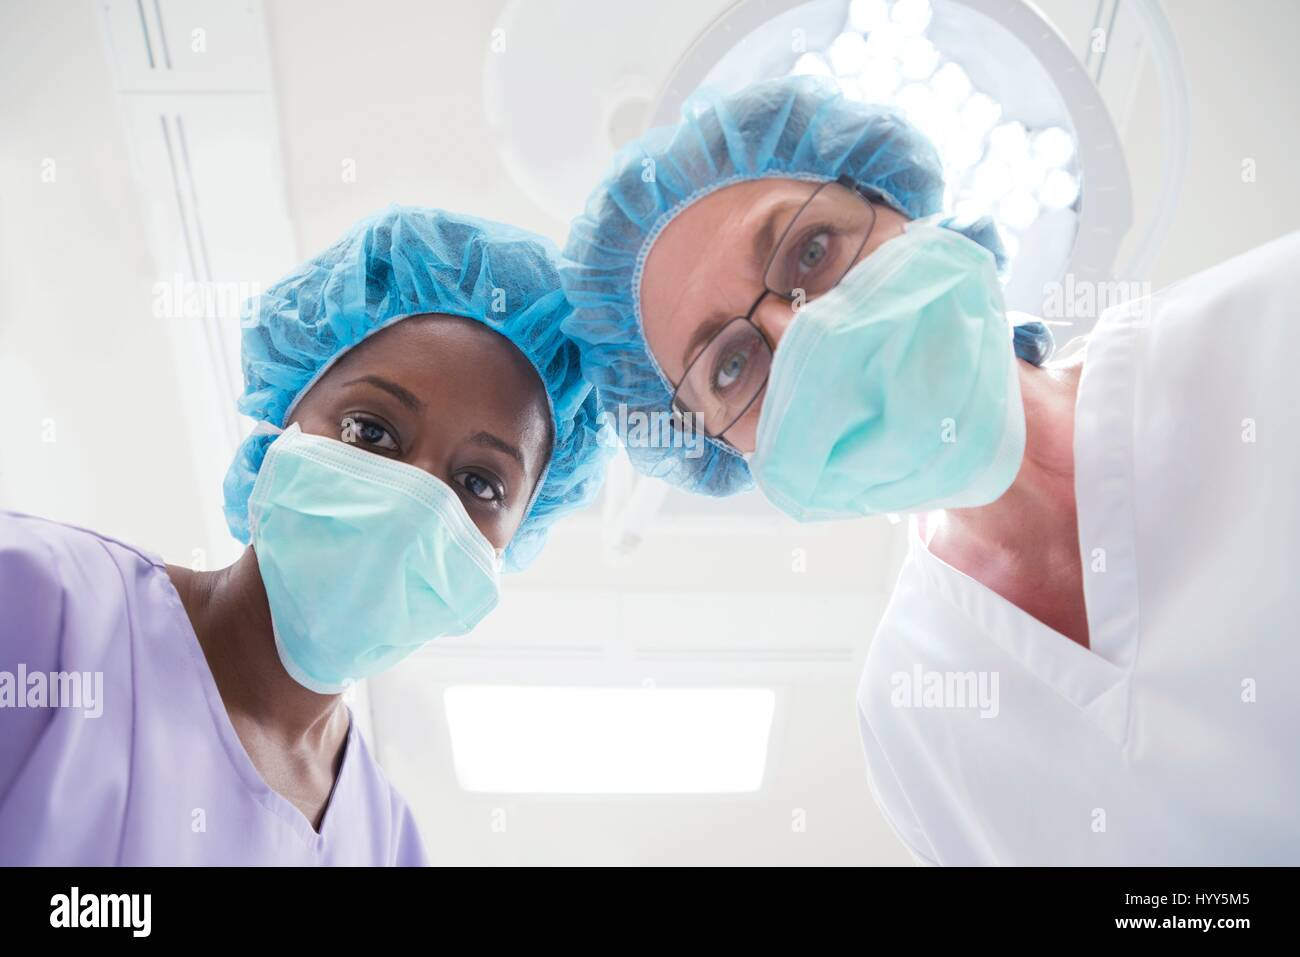 Two female surgeons looking towards camera, personal perspective. - Stock Image